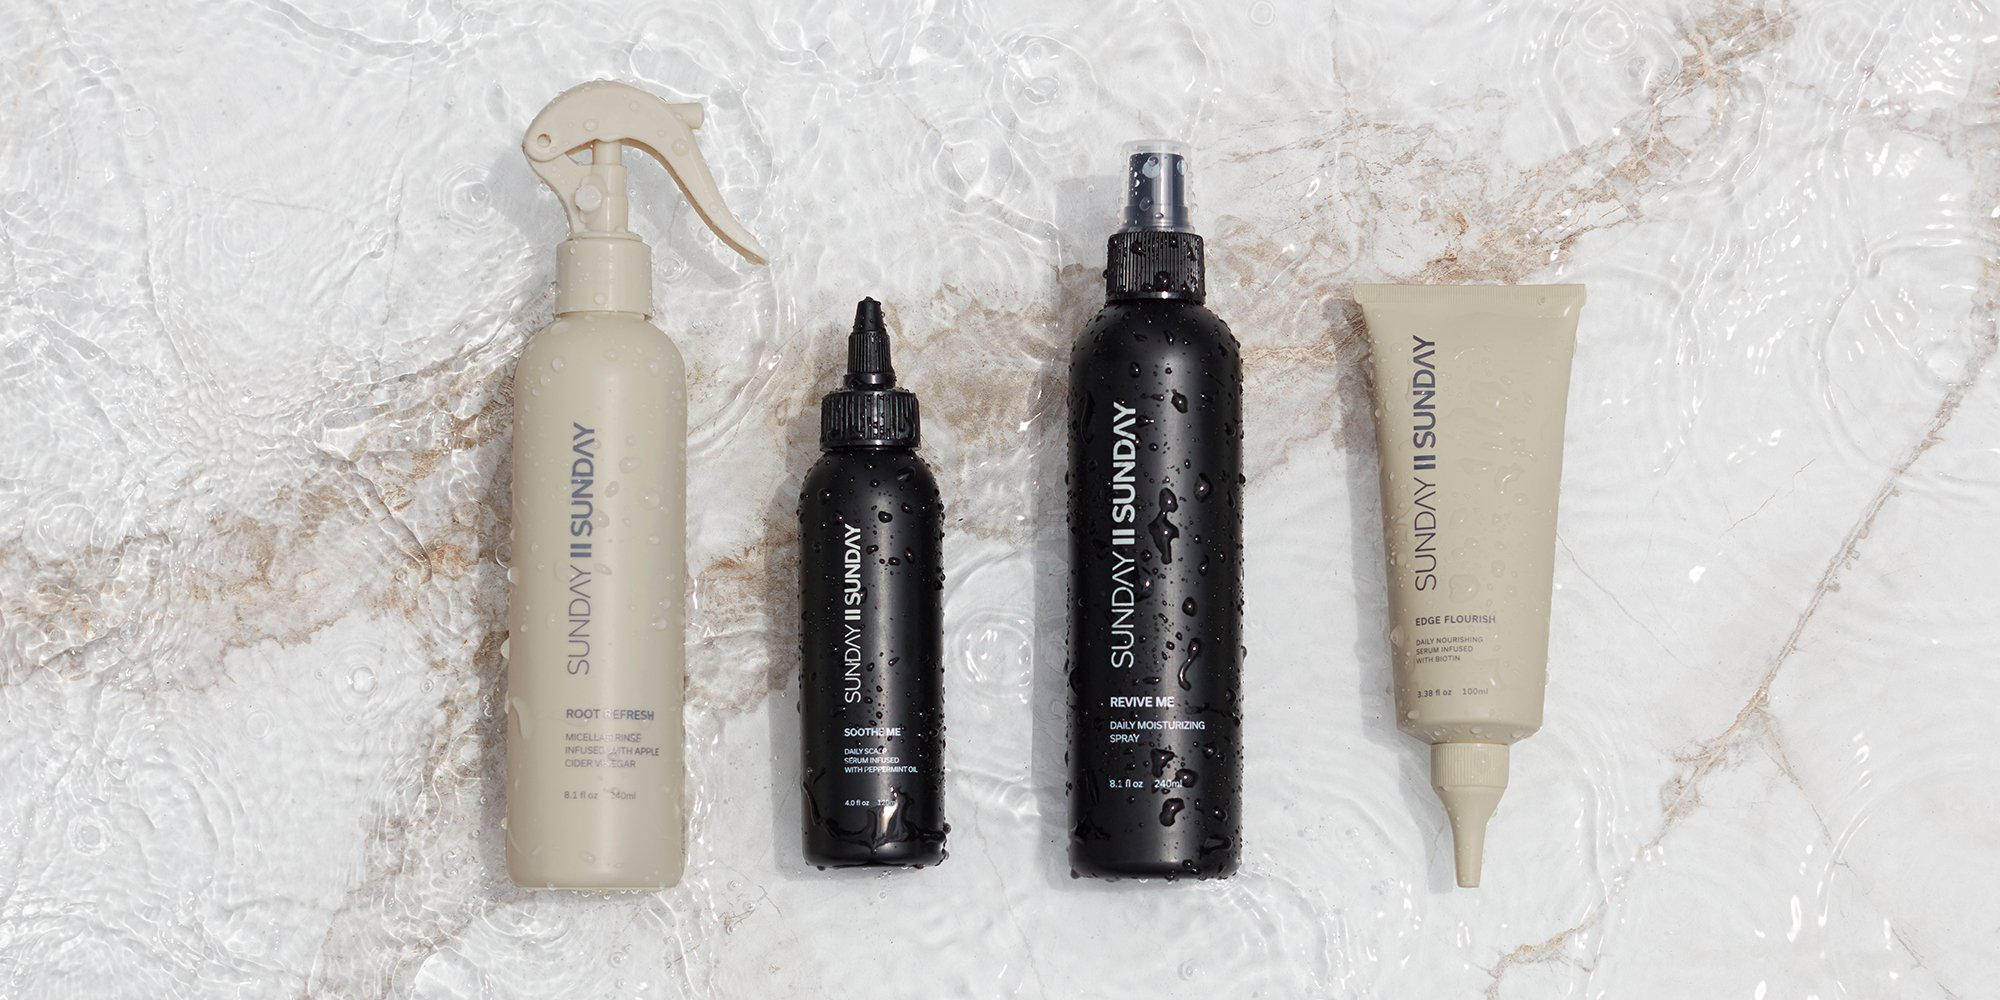 Serial Entrepreneur Keenan Beasley Gets Active With New Athleisure Haircare Brand Sunday II Sunday